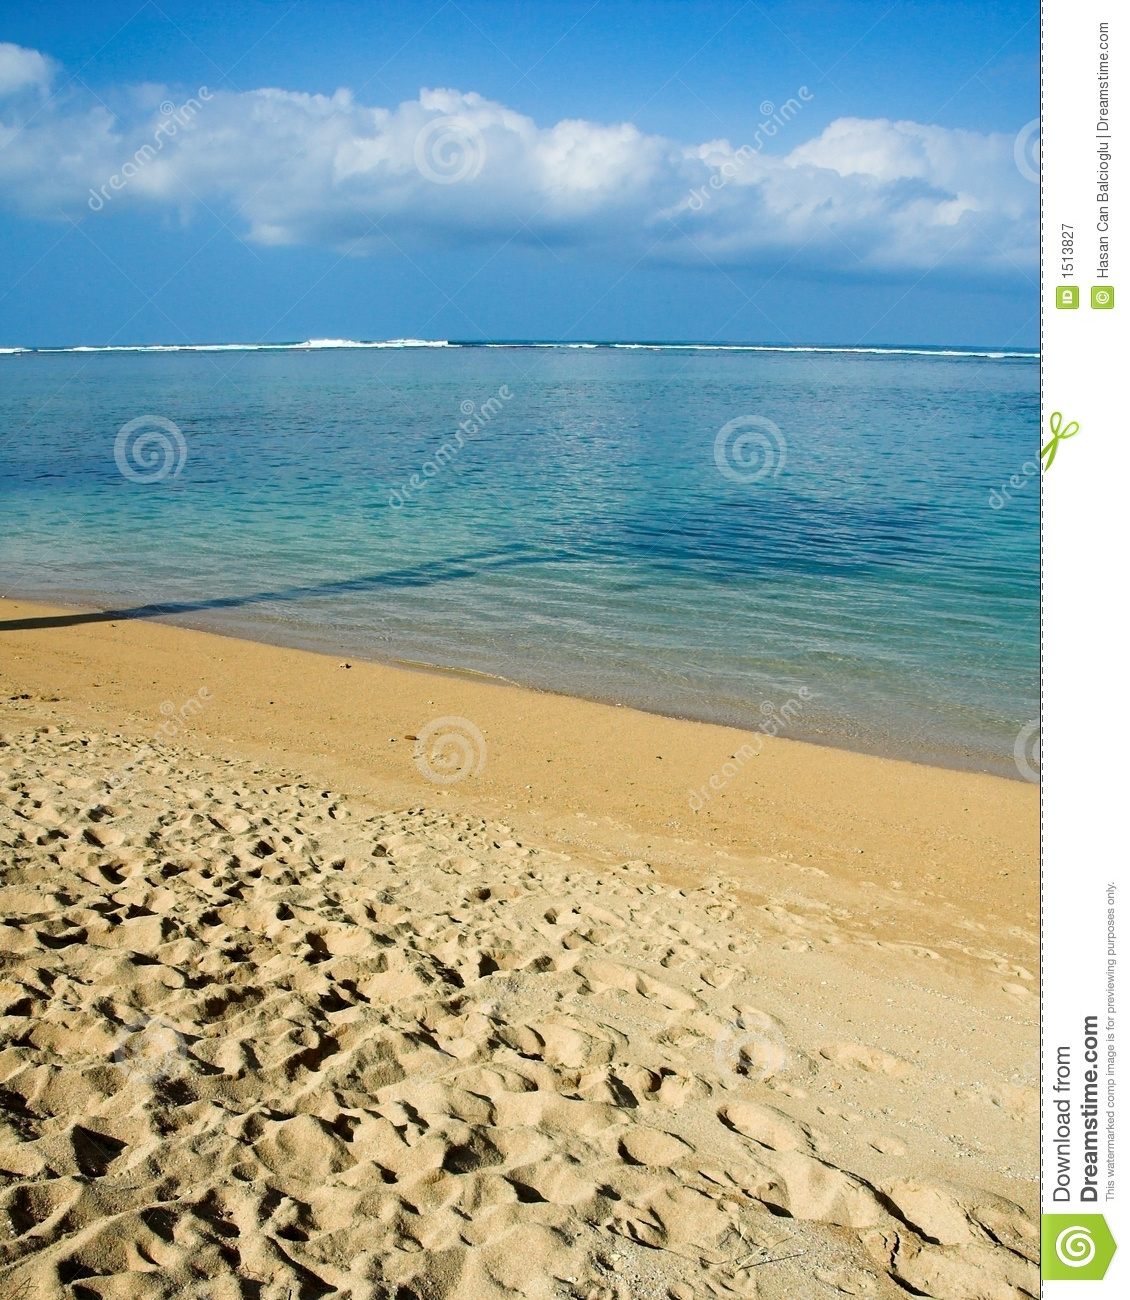 Kauai Beaches: Tropical Beach In Kauai, Hawaii Royalty Free Stock